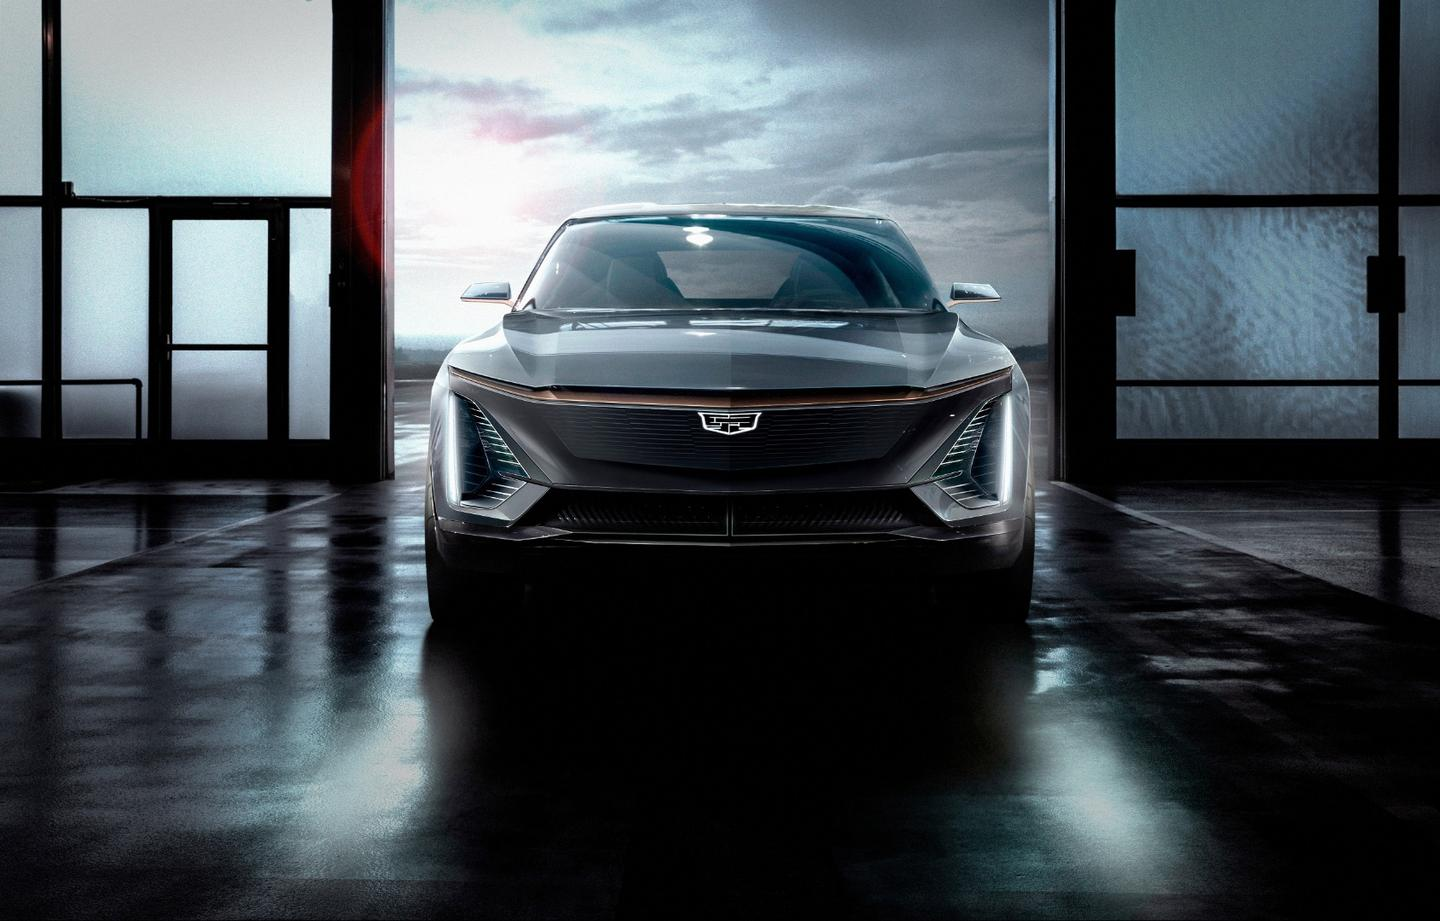 There is currently little technical detail available on the car, Cadillac's first fully electric EV